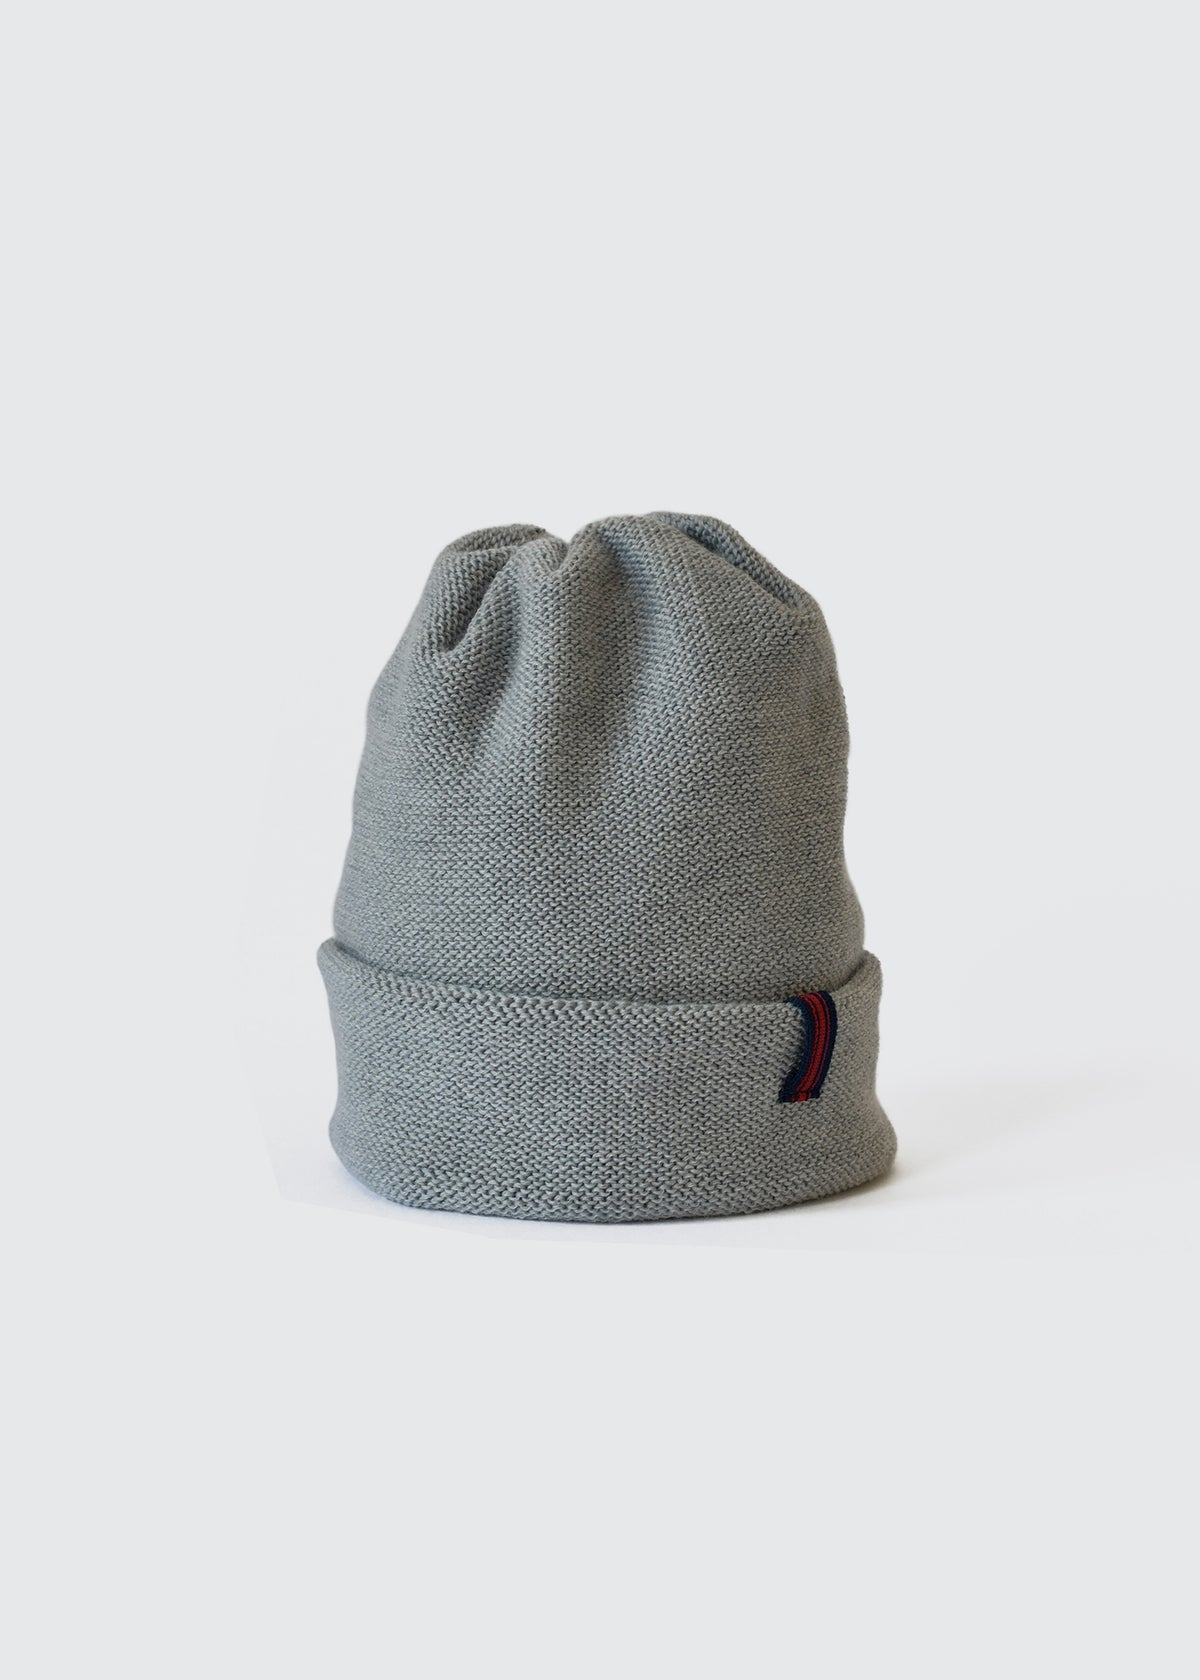 A04 - WATCH CAP - FEATHER GRAY - Wilson & Willy's - MPLS Neighbor Goods